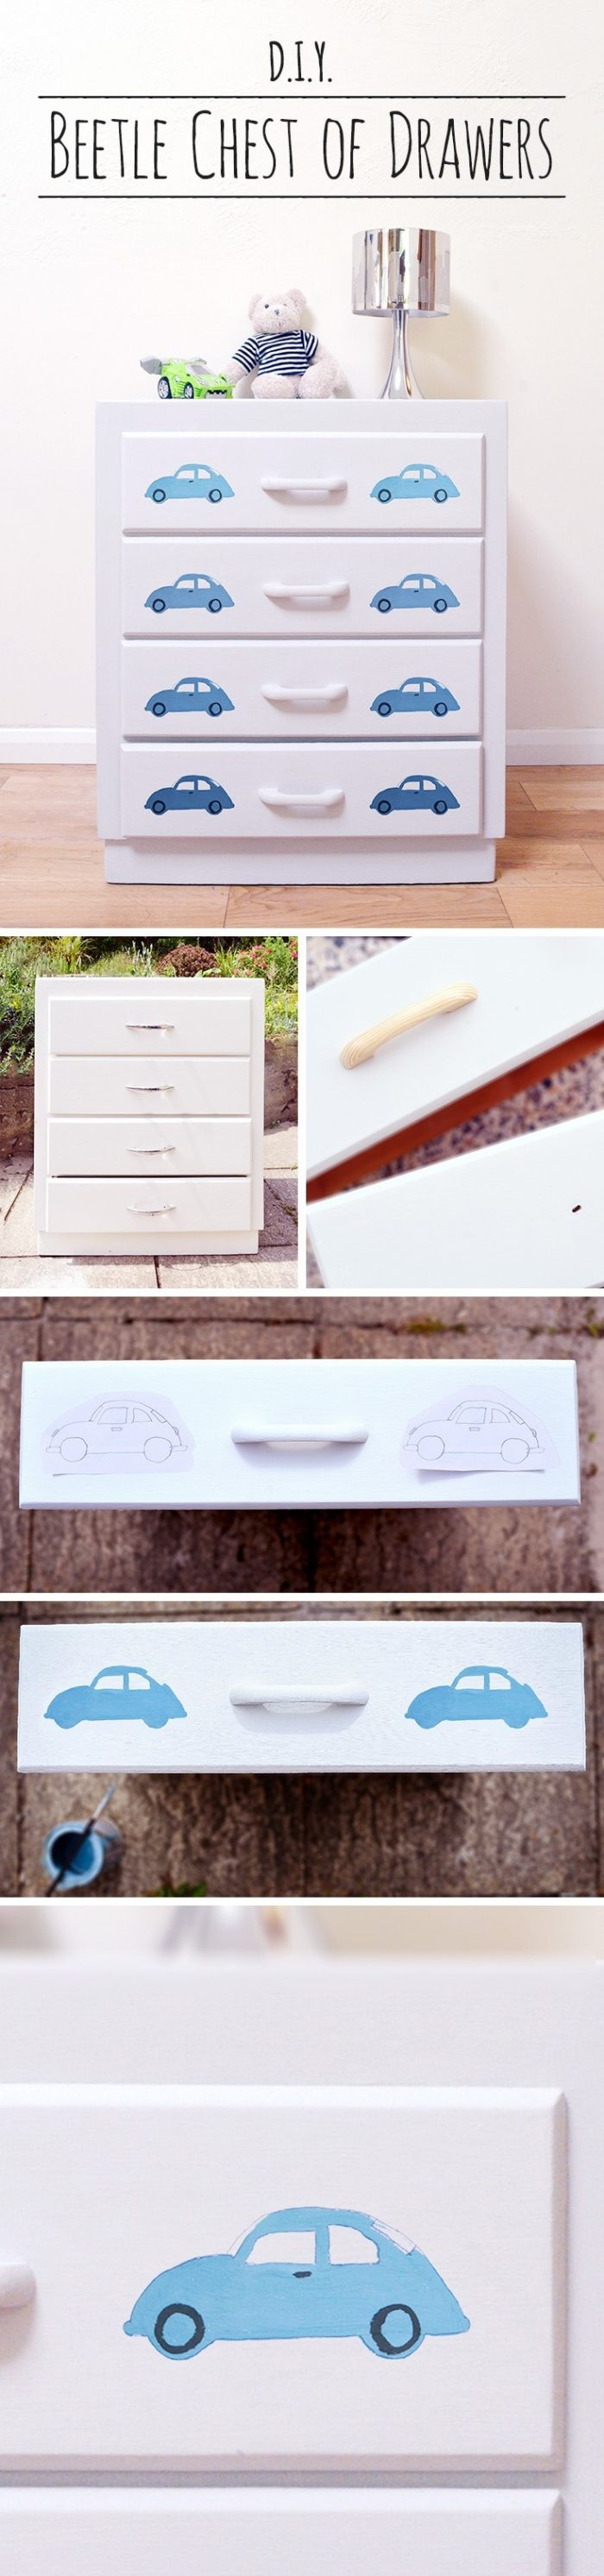 "DIY painted furniture is a great way of personalizing a bedroom. Find a full tutorial for the chalk paint beetlecar chest of drawers here and visit the collaborative board ""DIY bloggers for Volkswagen"" for more inspiring DIY instructions and ideas: http://www.pinterest.com/volkswagen/diy-bloggers-for-volkswagen"""